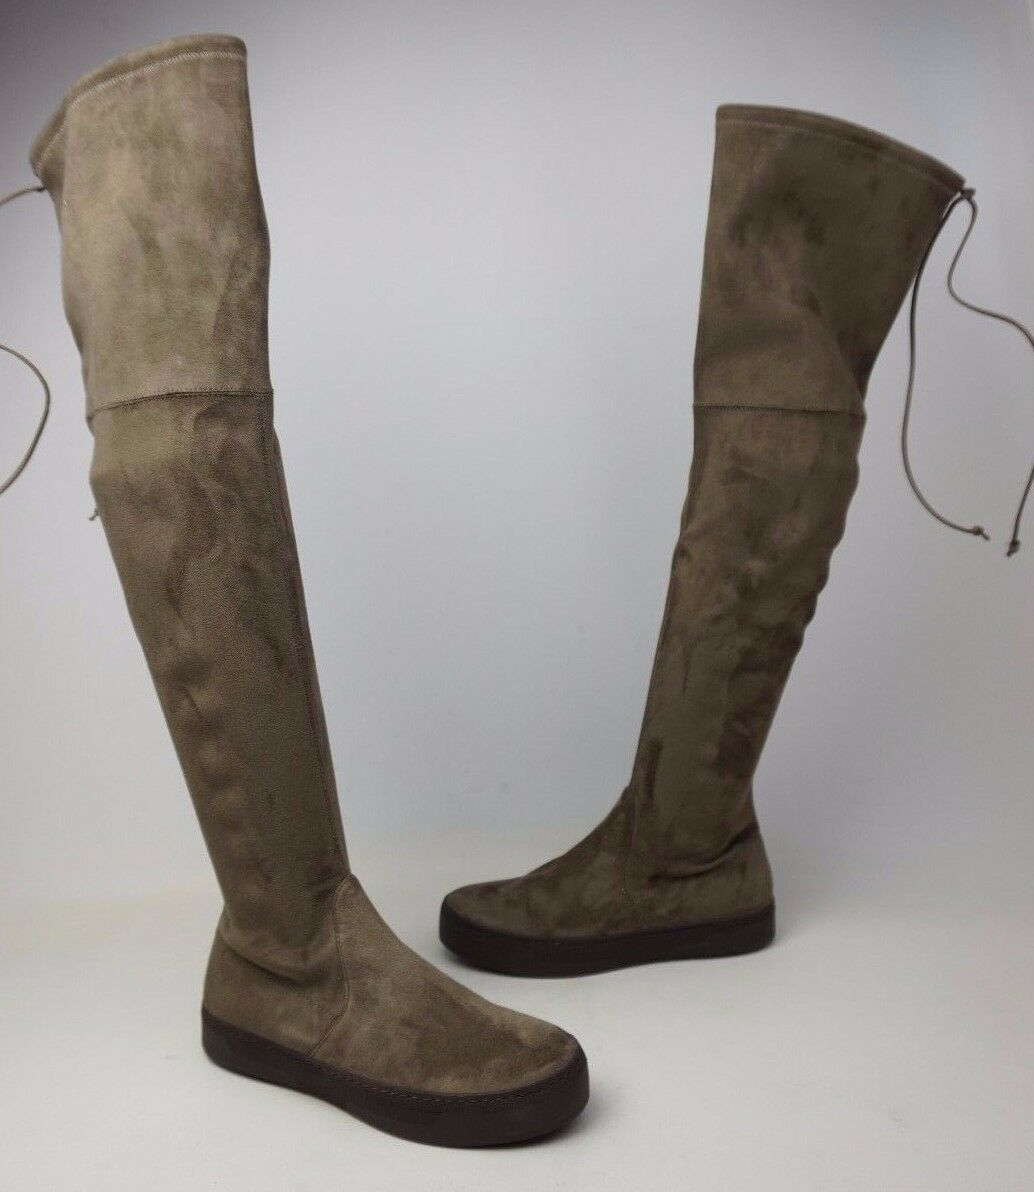 Stuart Weitzman Playtime Brown Swamp Suede Over The Knee Boots Size 5 M